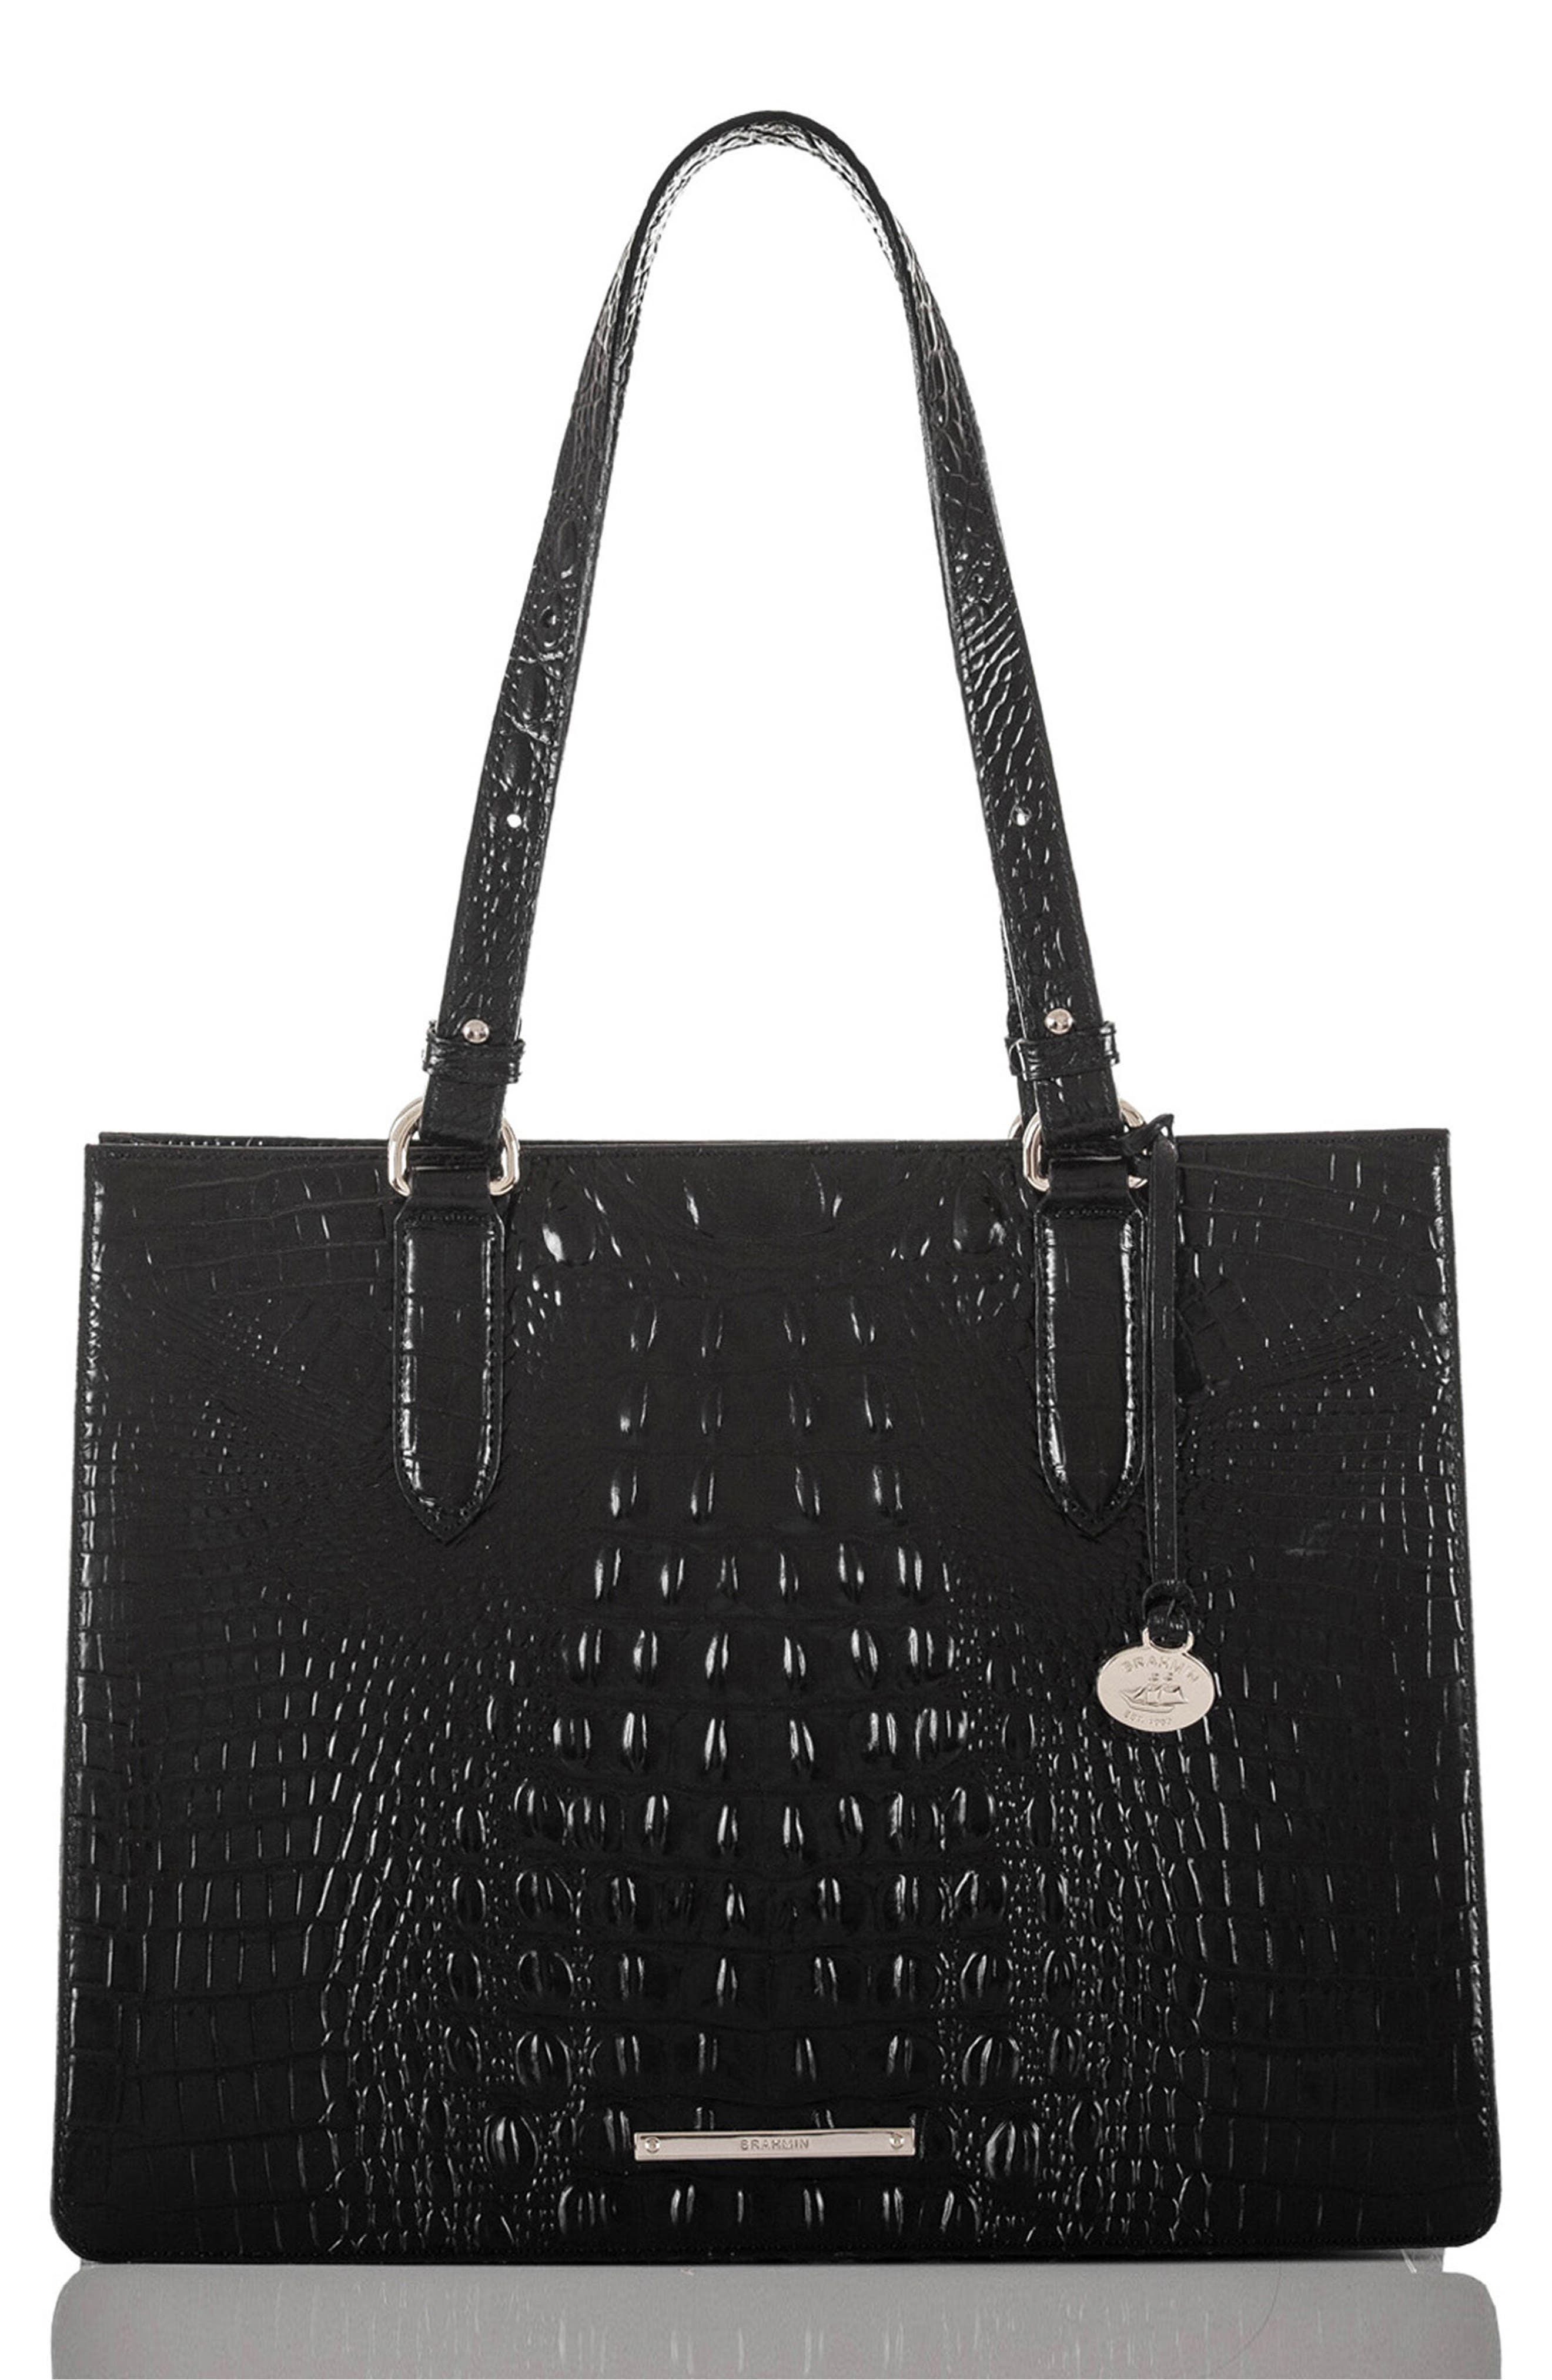 Medium Camille Leather Tote,                             Main thumbnail 1, color,                             001